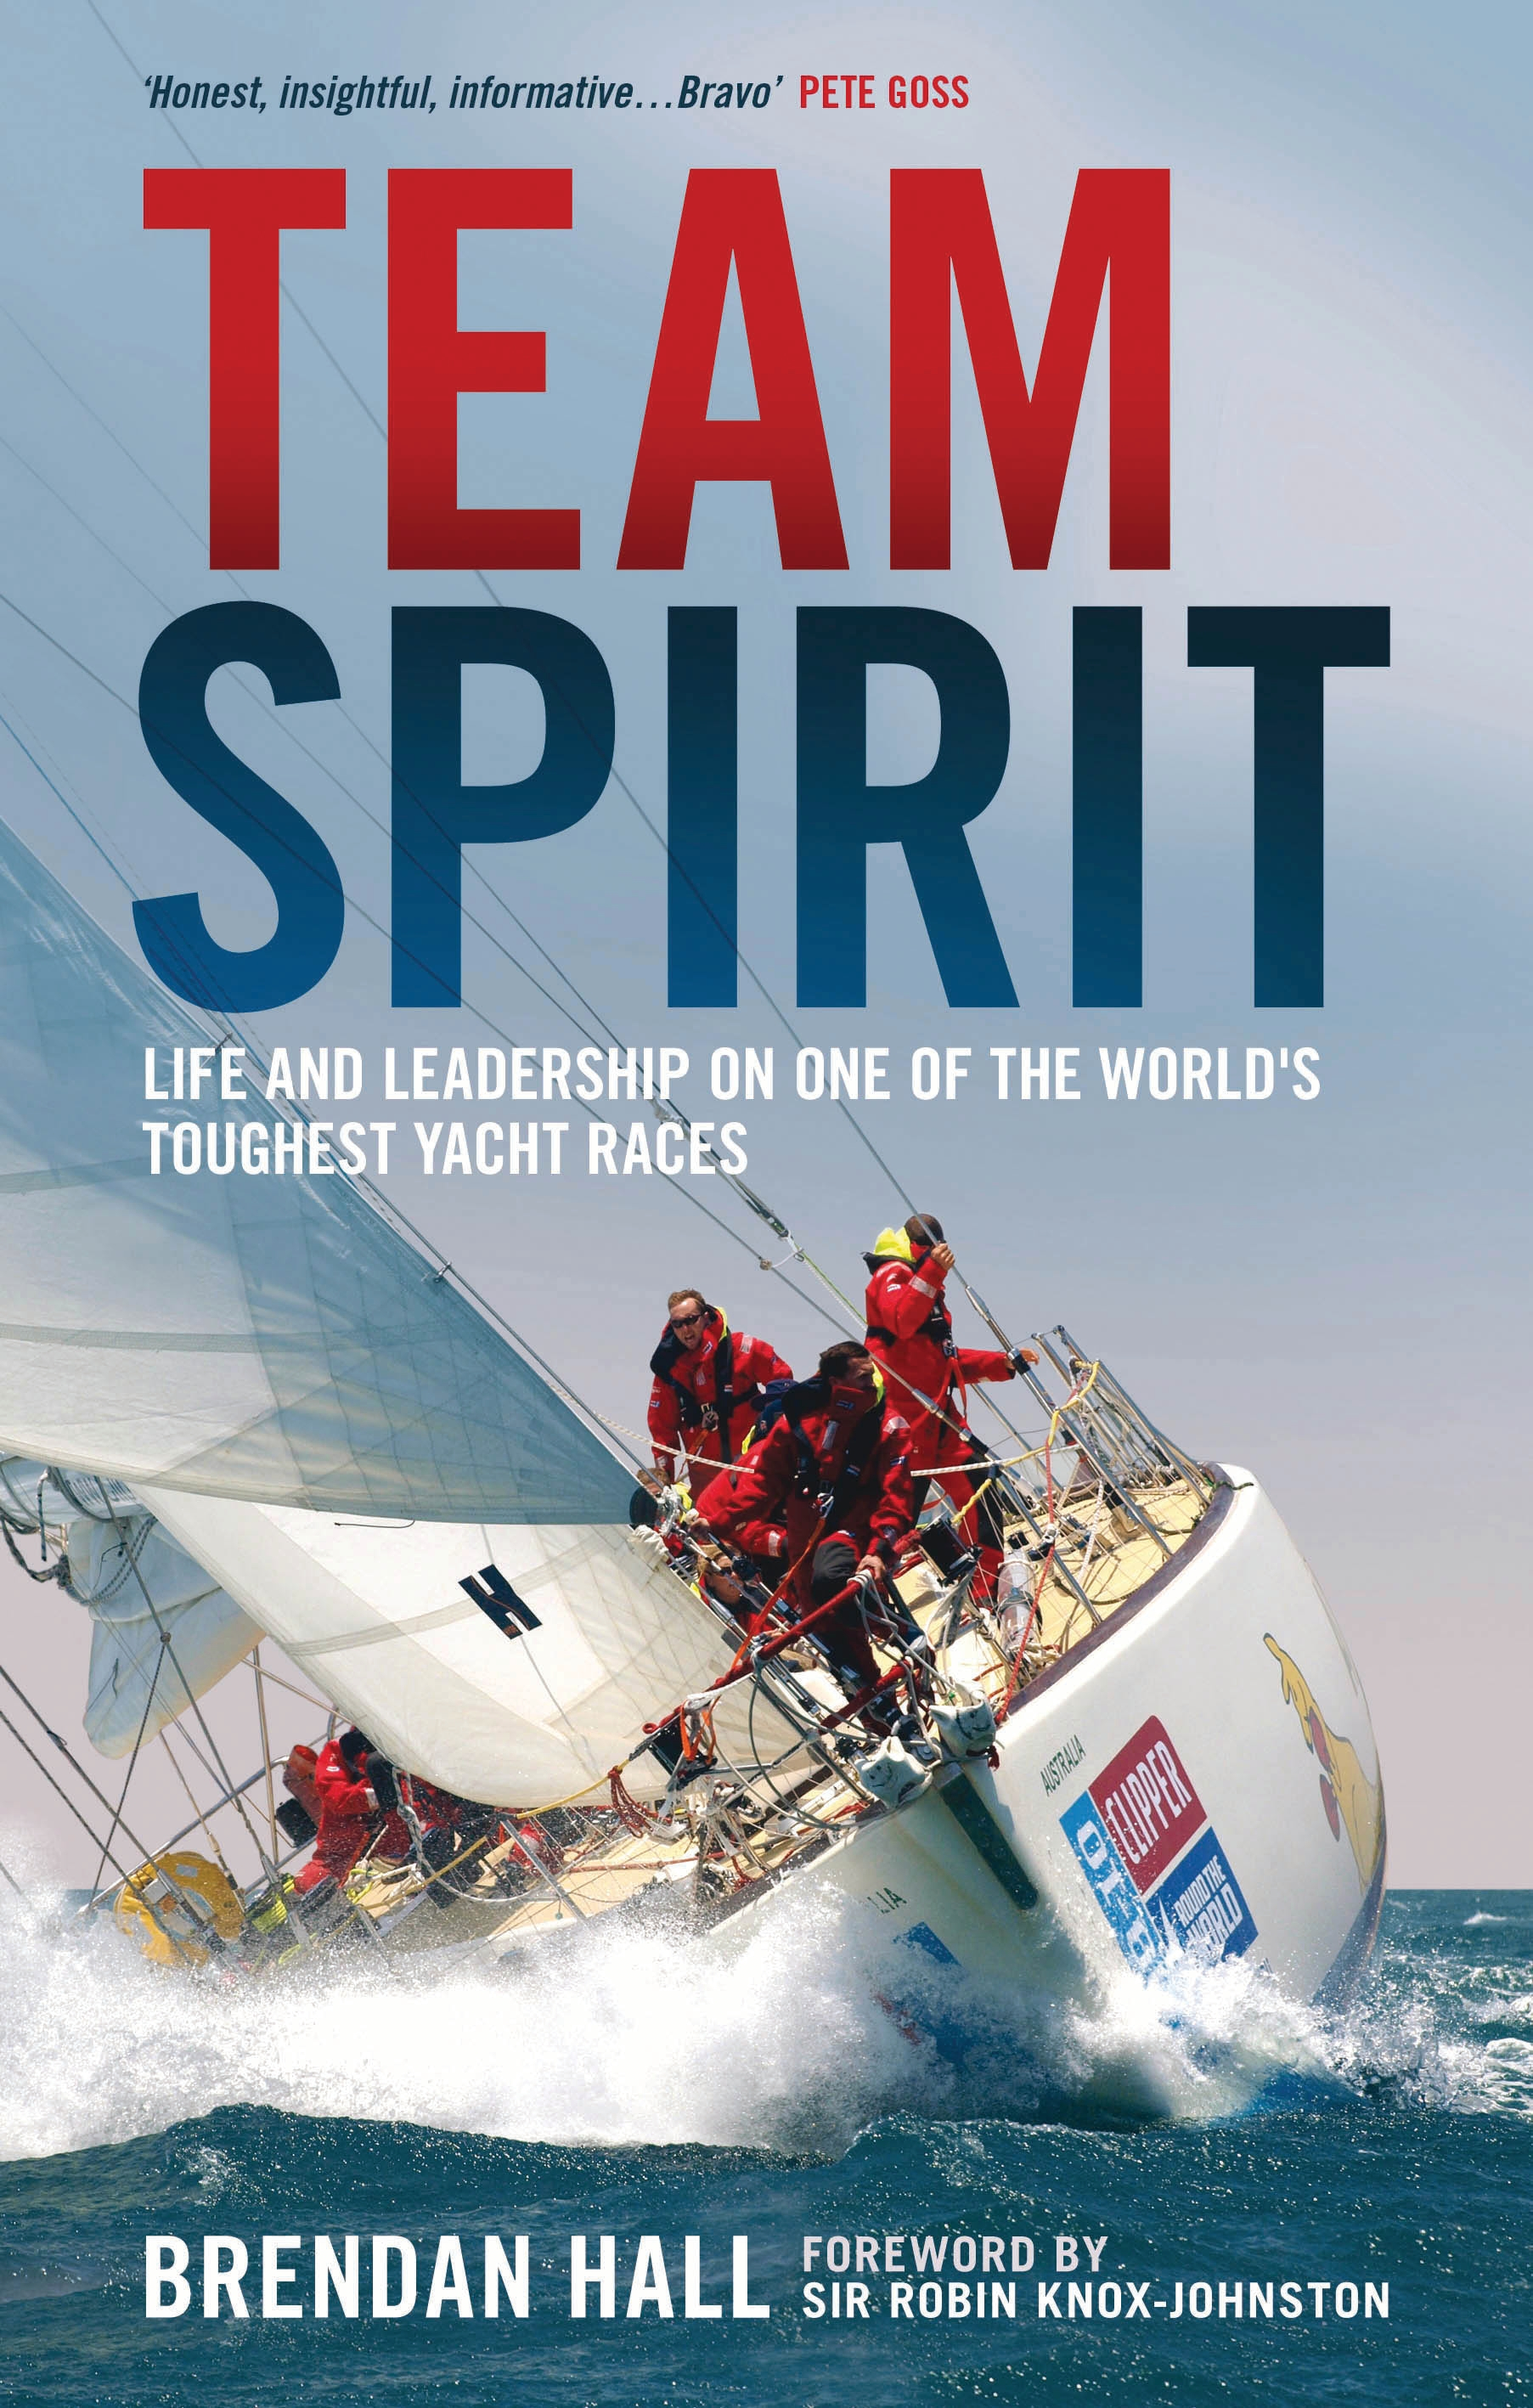 Team Spirit Life and Leadership on One of the World's Toughest Yacht Races